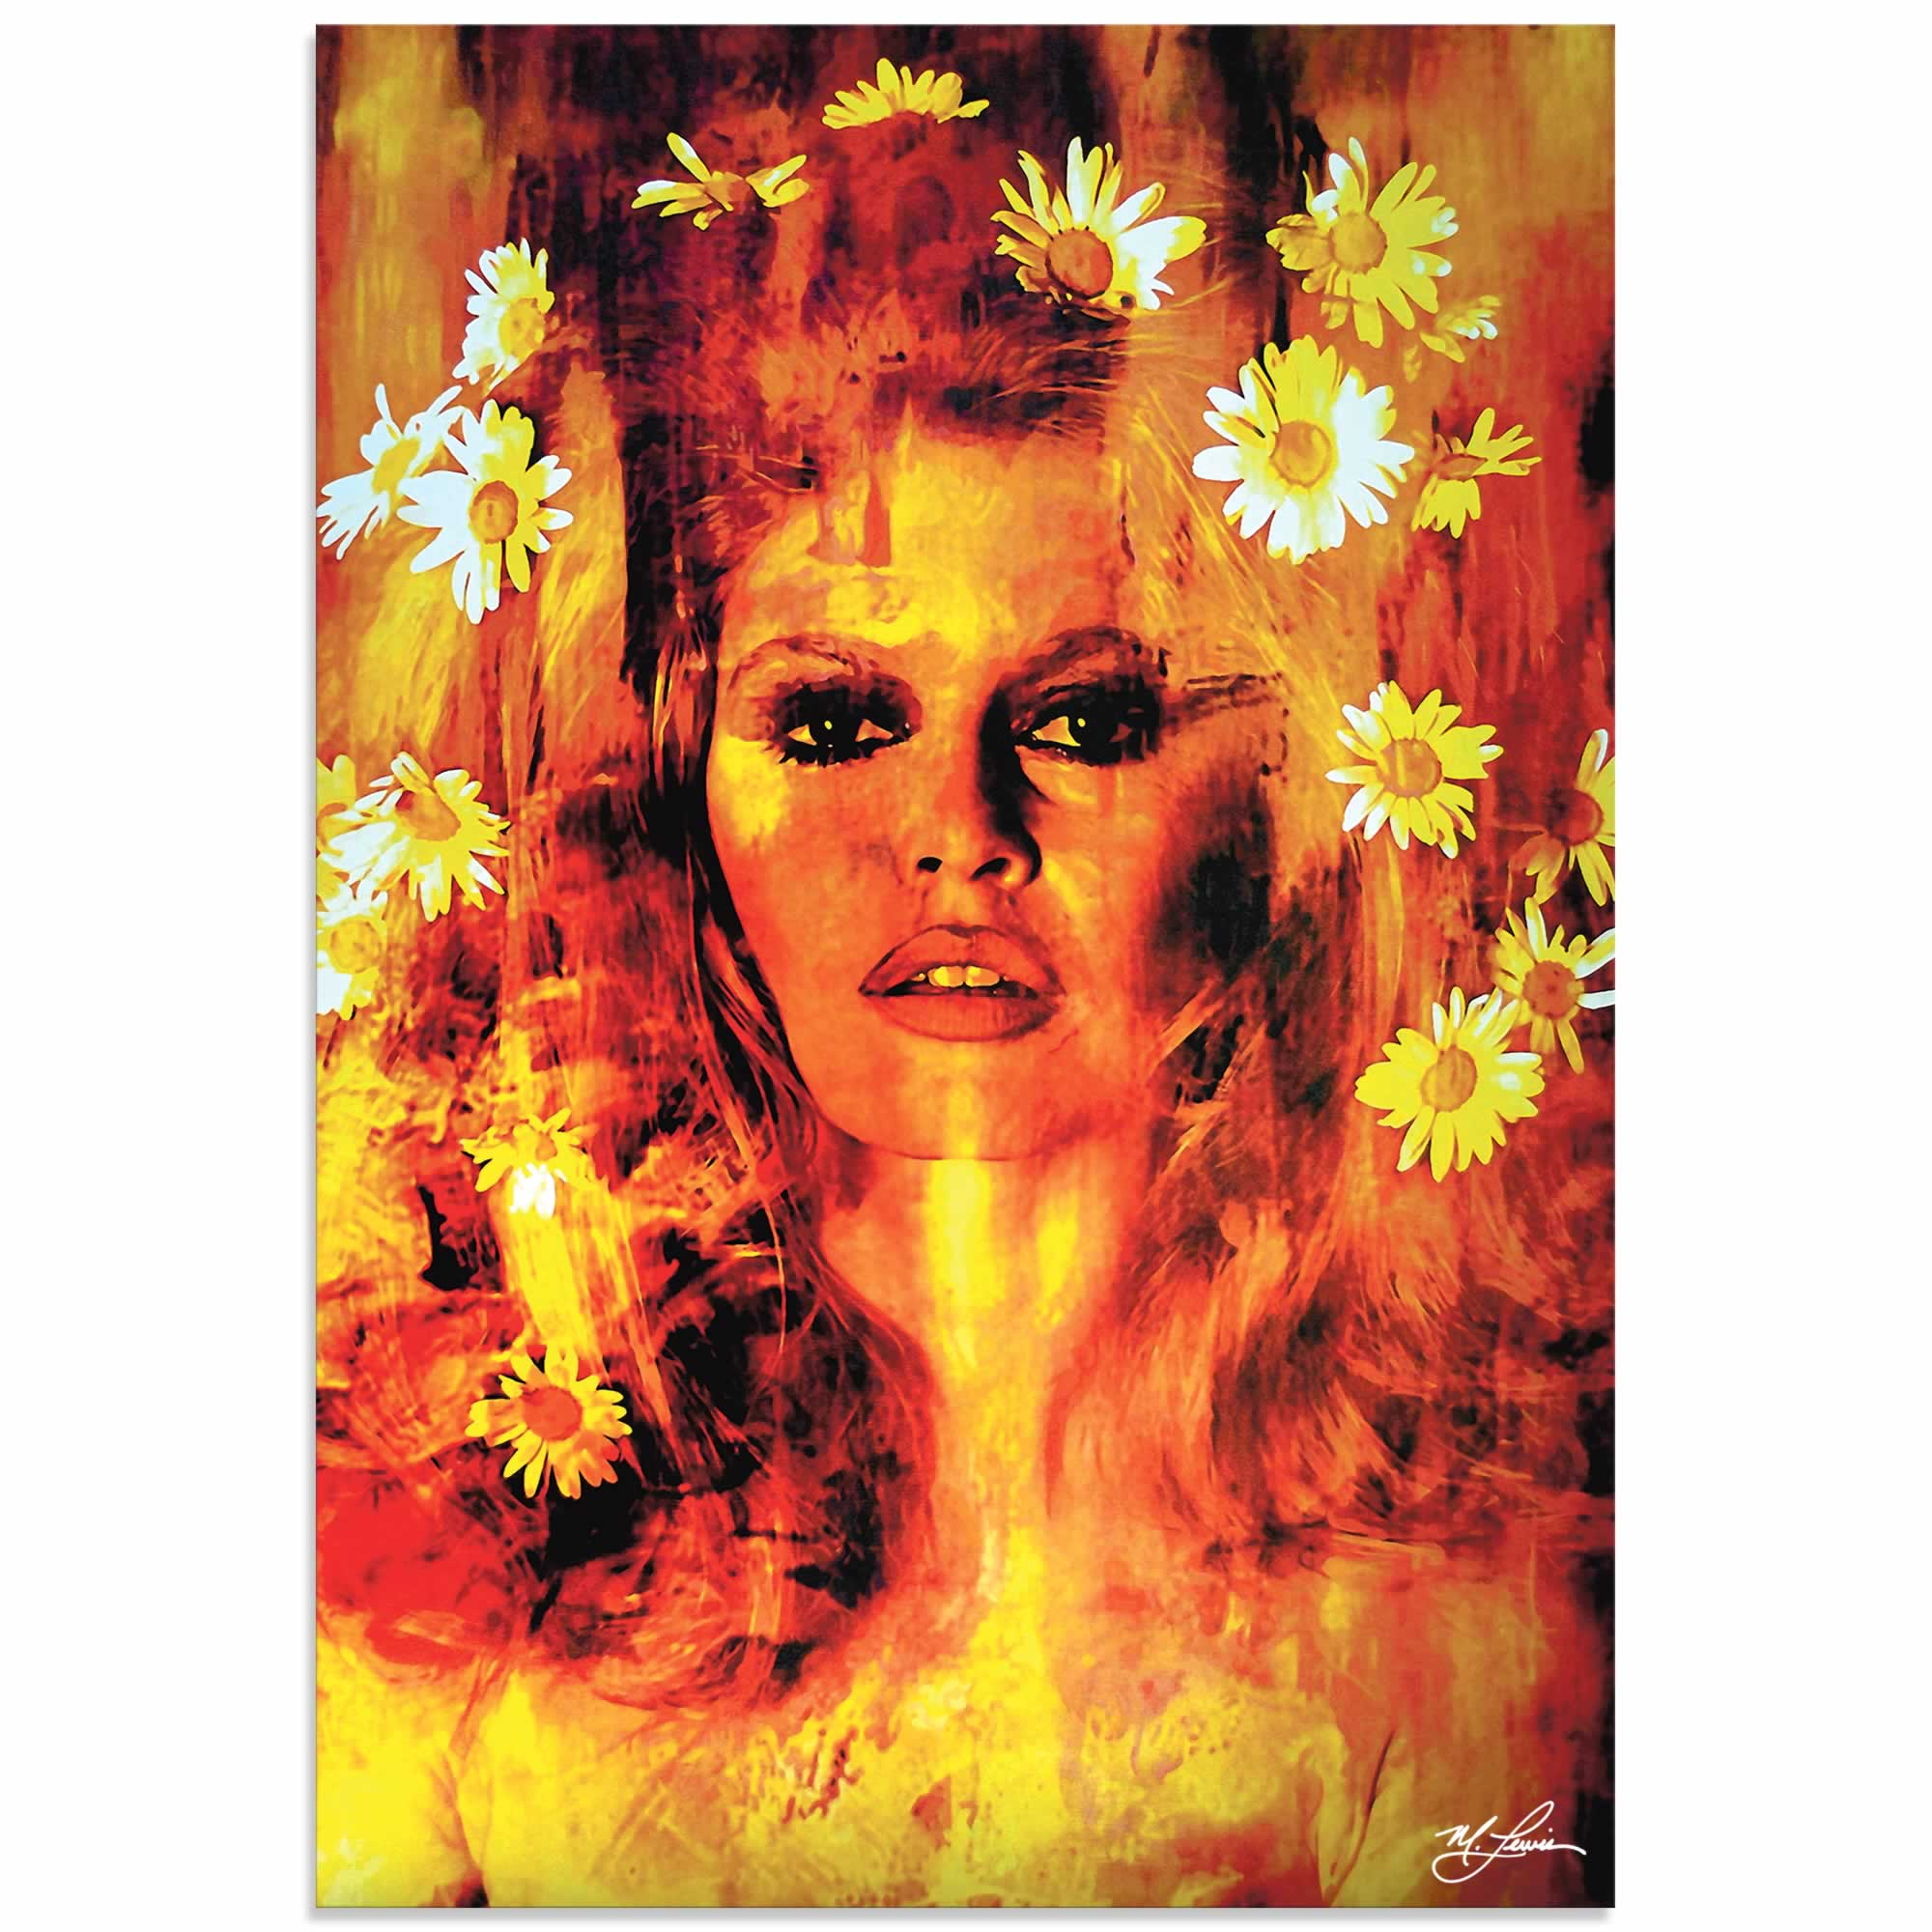 Bridget Bardot Life Captured | Pop Art Painting by Mark Lewis, Signed & Numbered Limited Edition